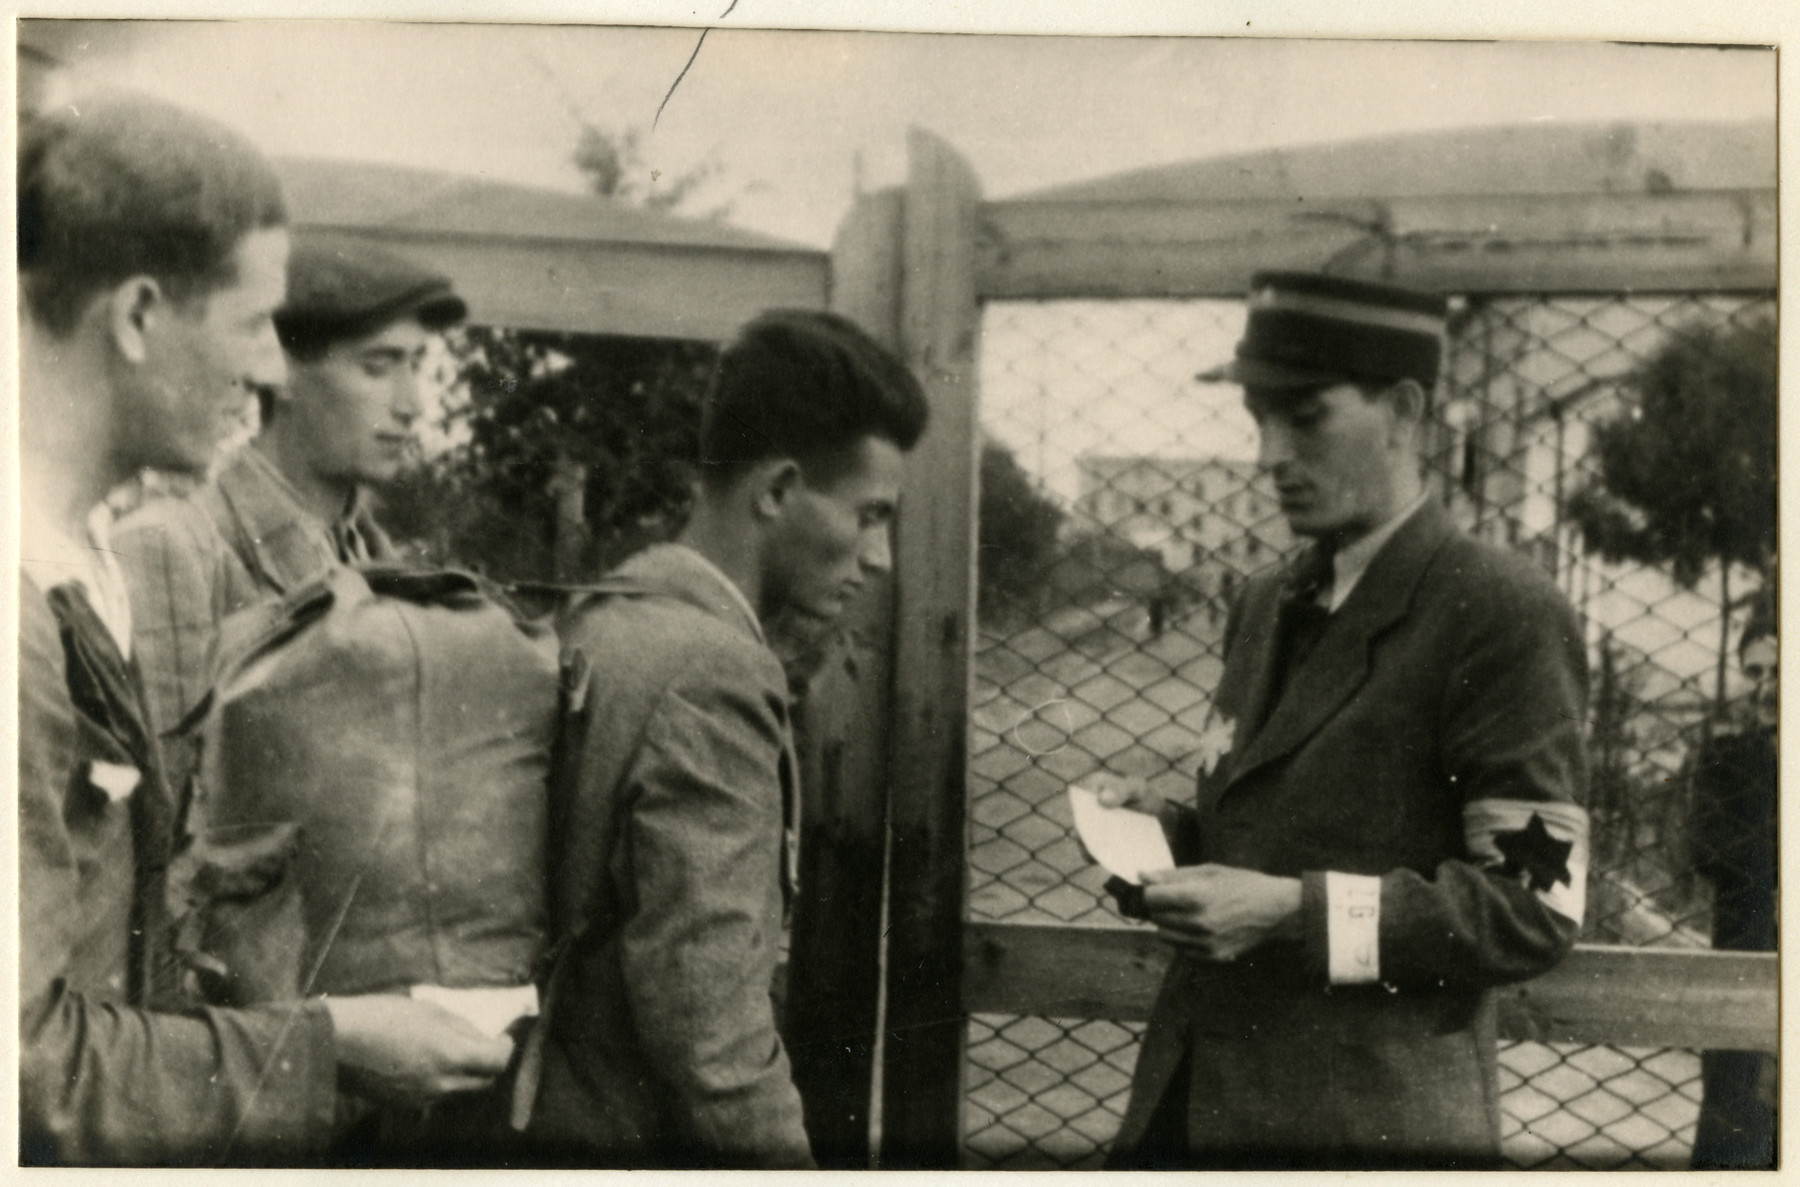 A Jewish policeman checks the documents of several men at the entrance of the central prison of the Lodz ghetto [probably prior to their deportation].